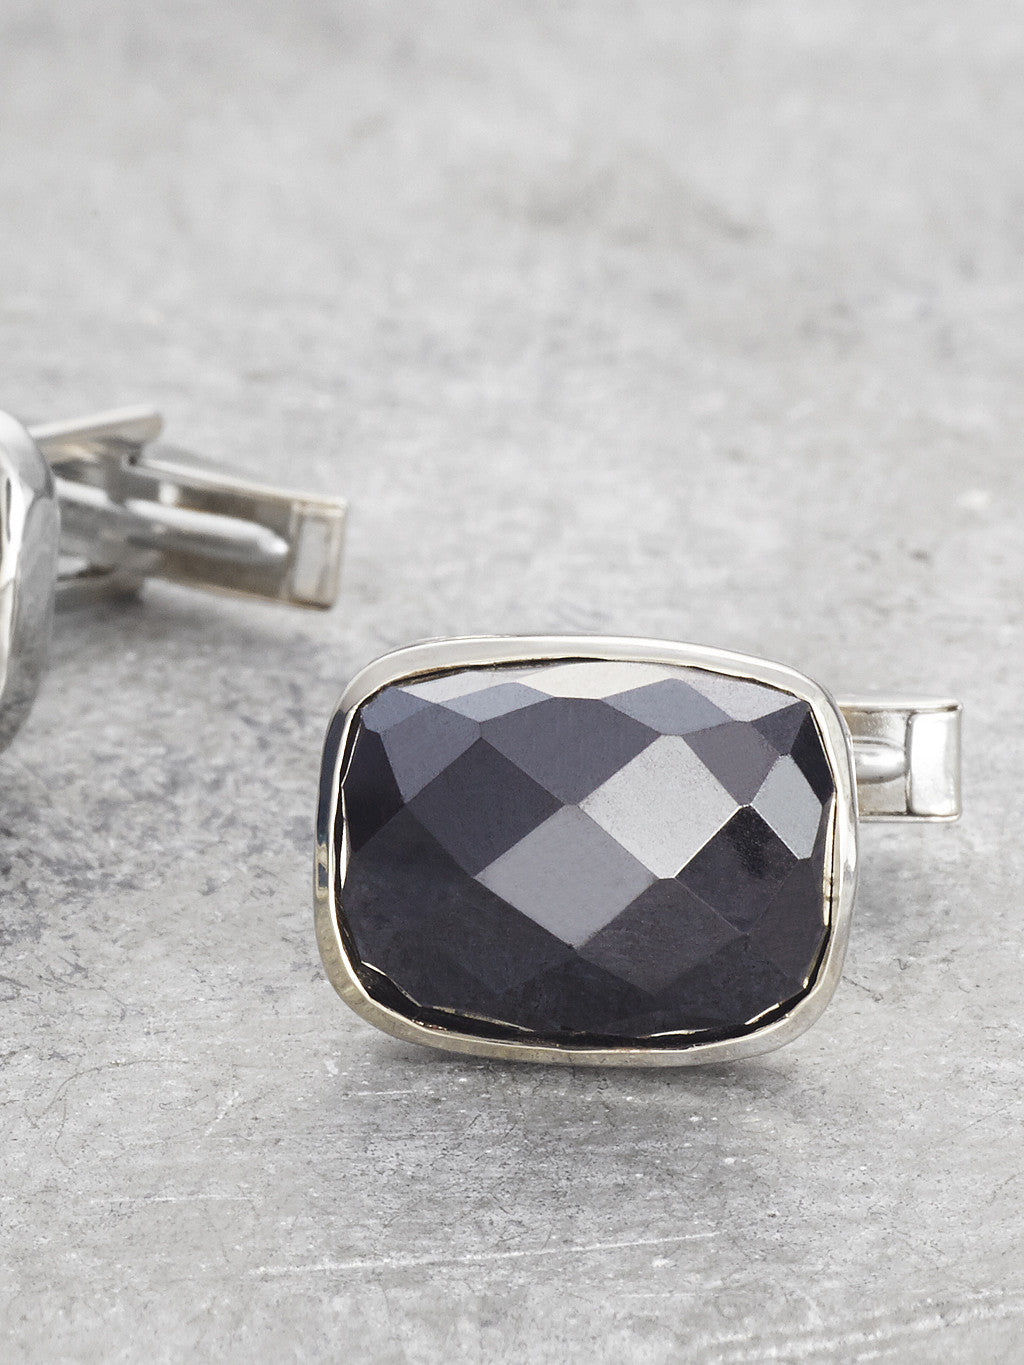 Black Onyx Cufflinks detail 2